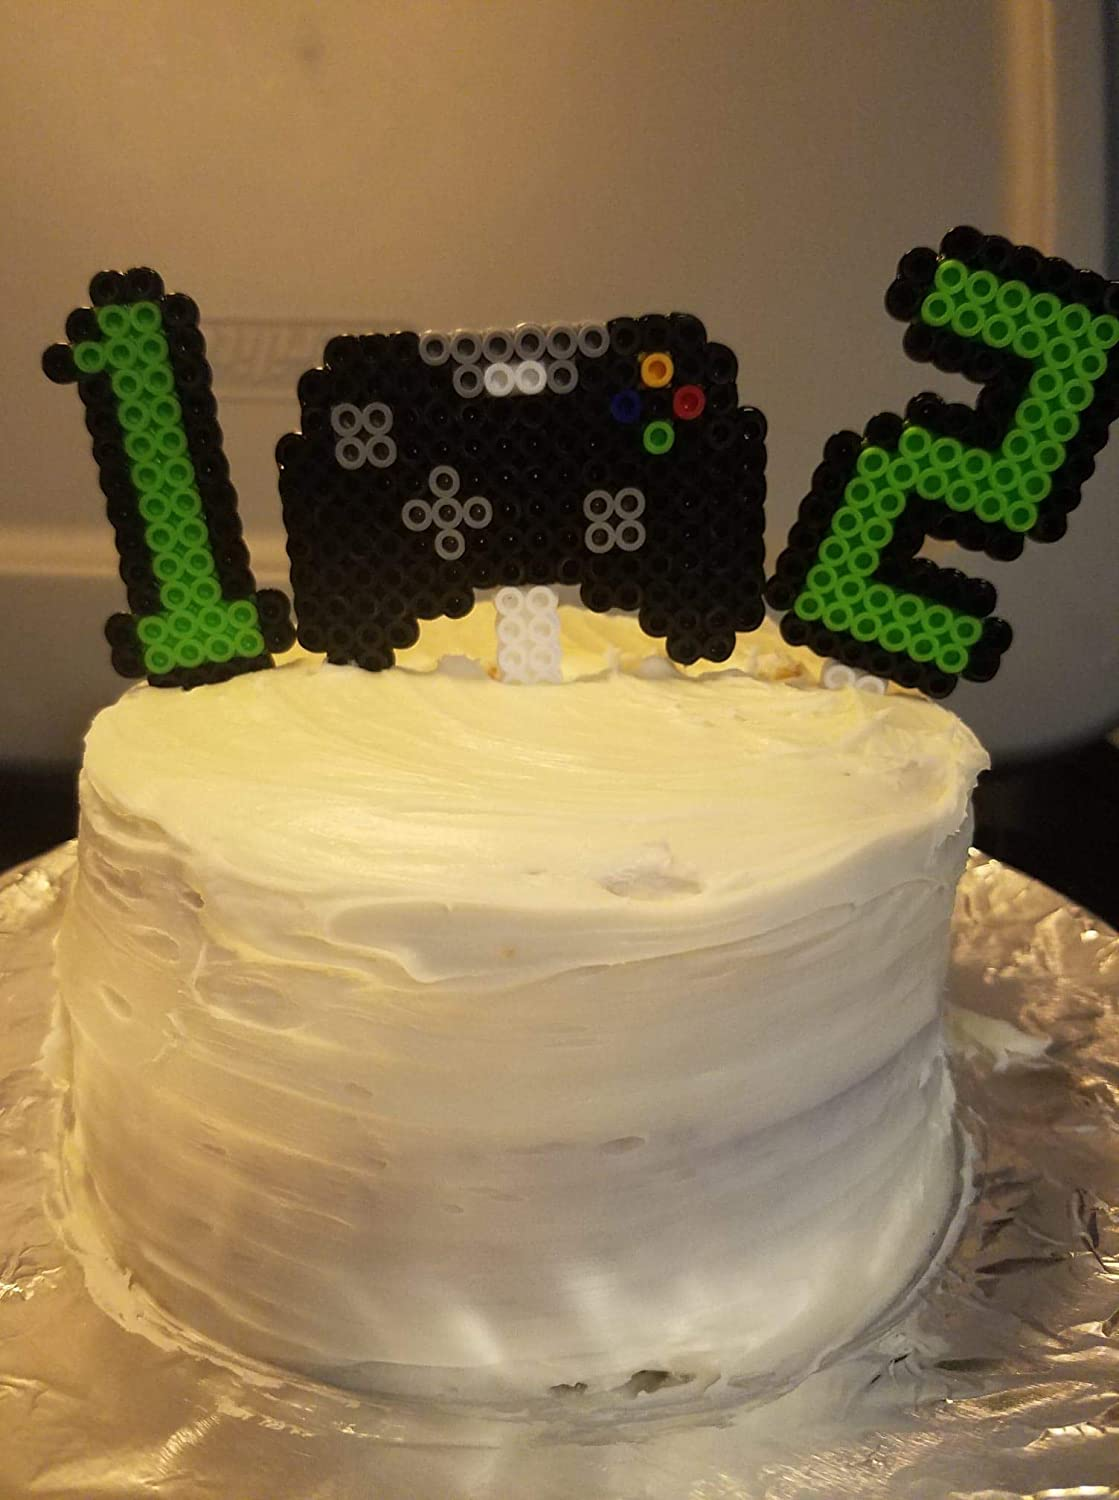 Swell Amazon Com Gamer Birthday Cake Topper Set Handmade Funny Birthday Cards Online Alyptdamsfinfo